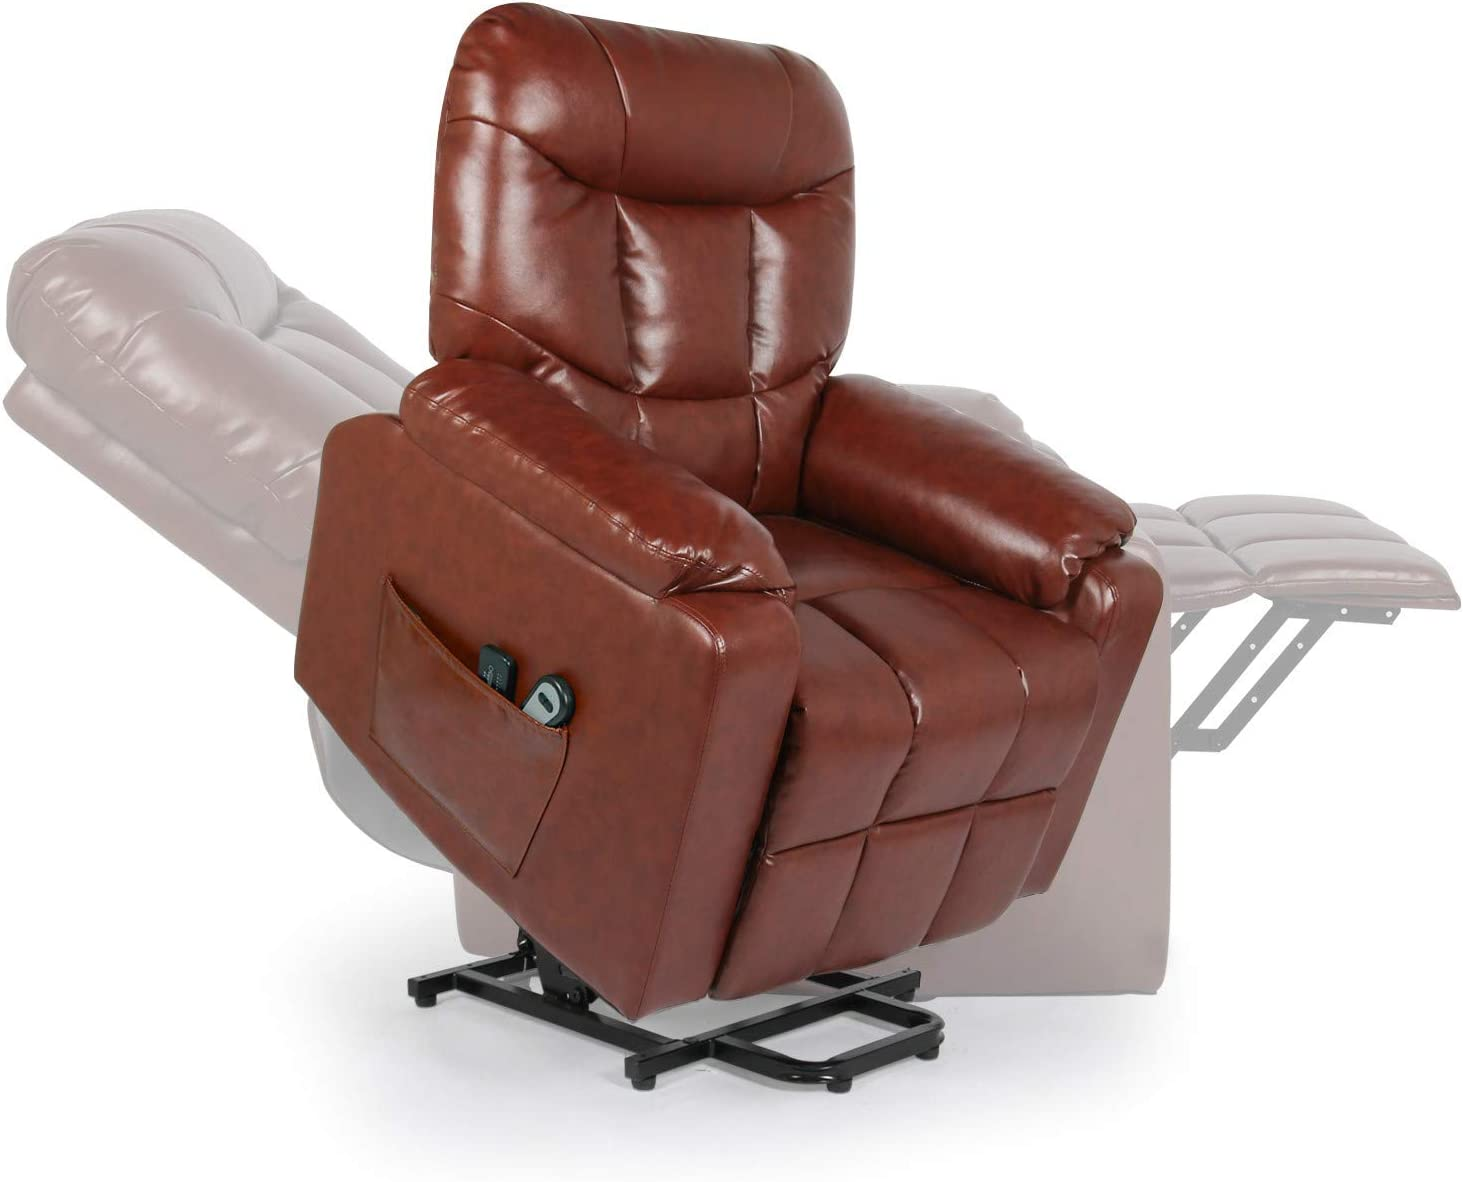 Home Power Lift Recliner Chair for Elderly with Massage, Faux Leather Lounge Chairs for Living Room Classic Single Sofa with Side Pockets Home Theater Seat (Red Brown)